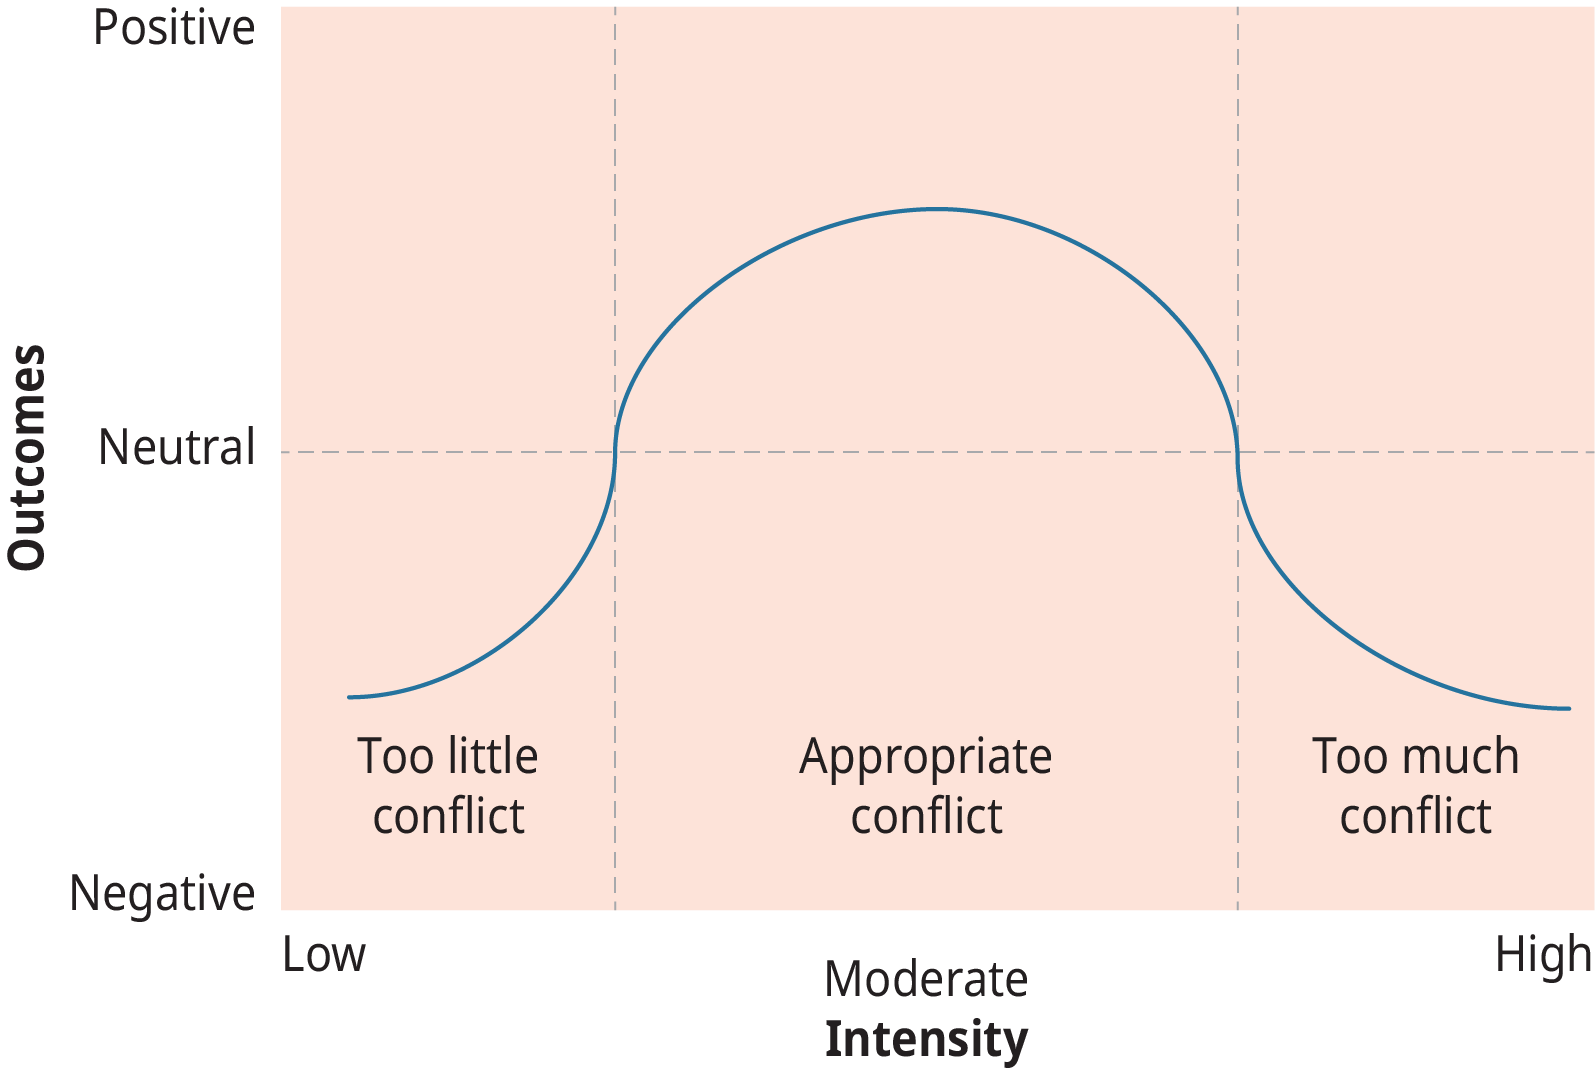 A graph representing the relationship between conflict intensity and outcomes.